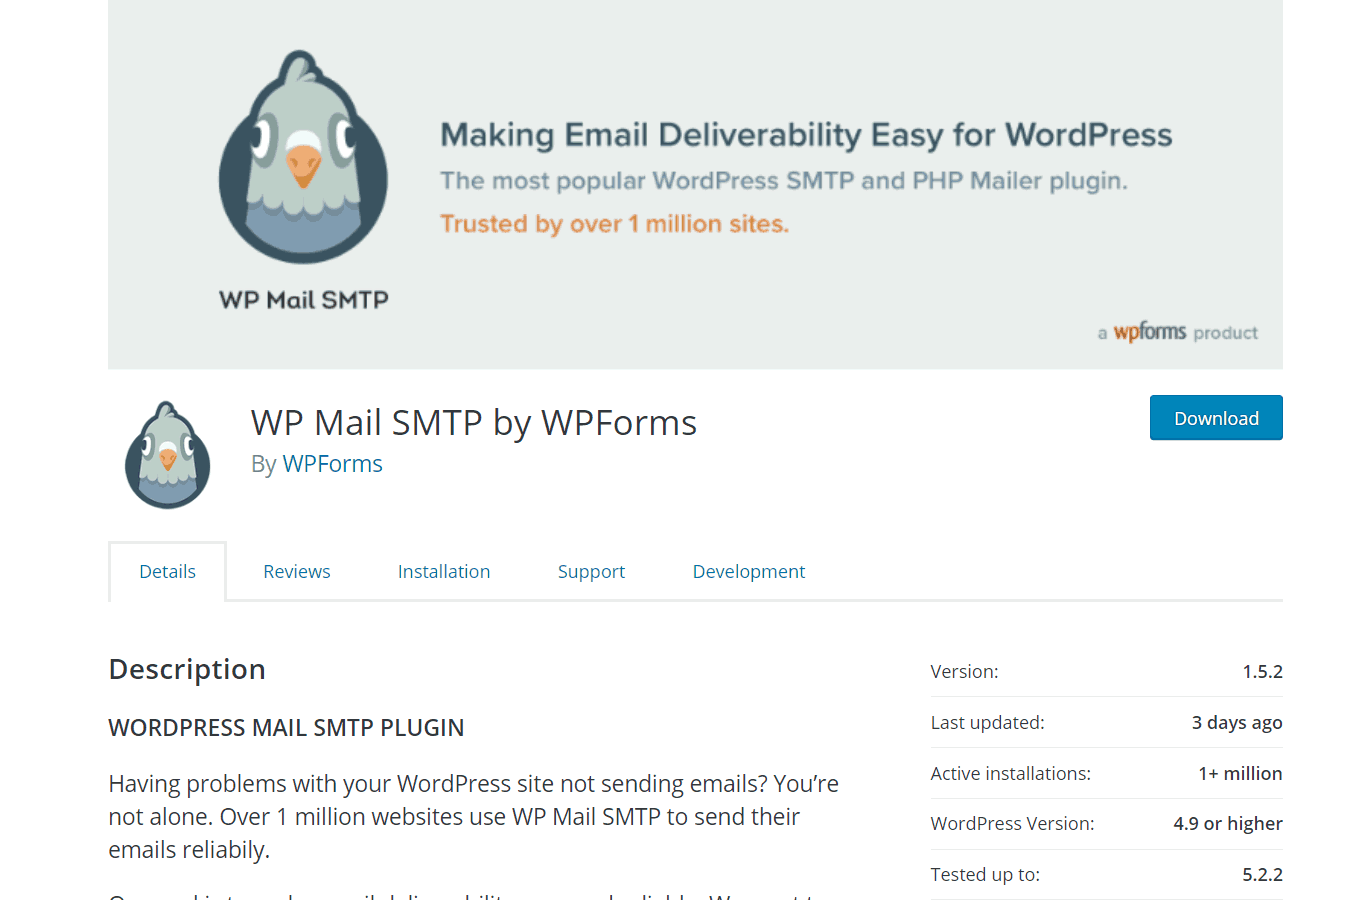 wp mail smtp free version